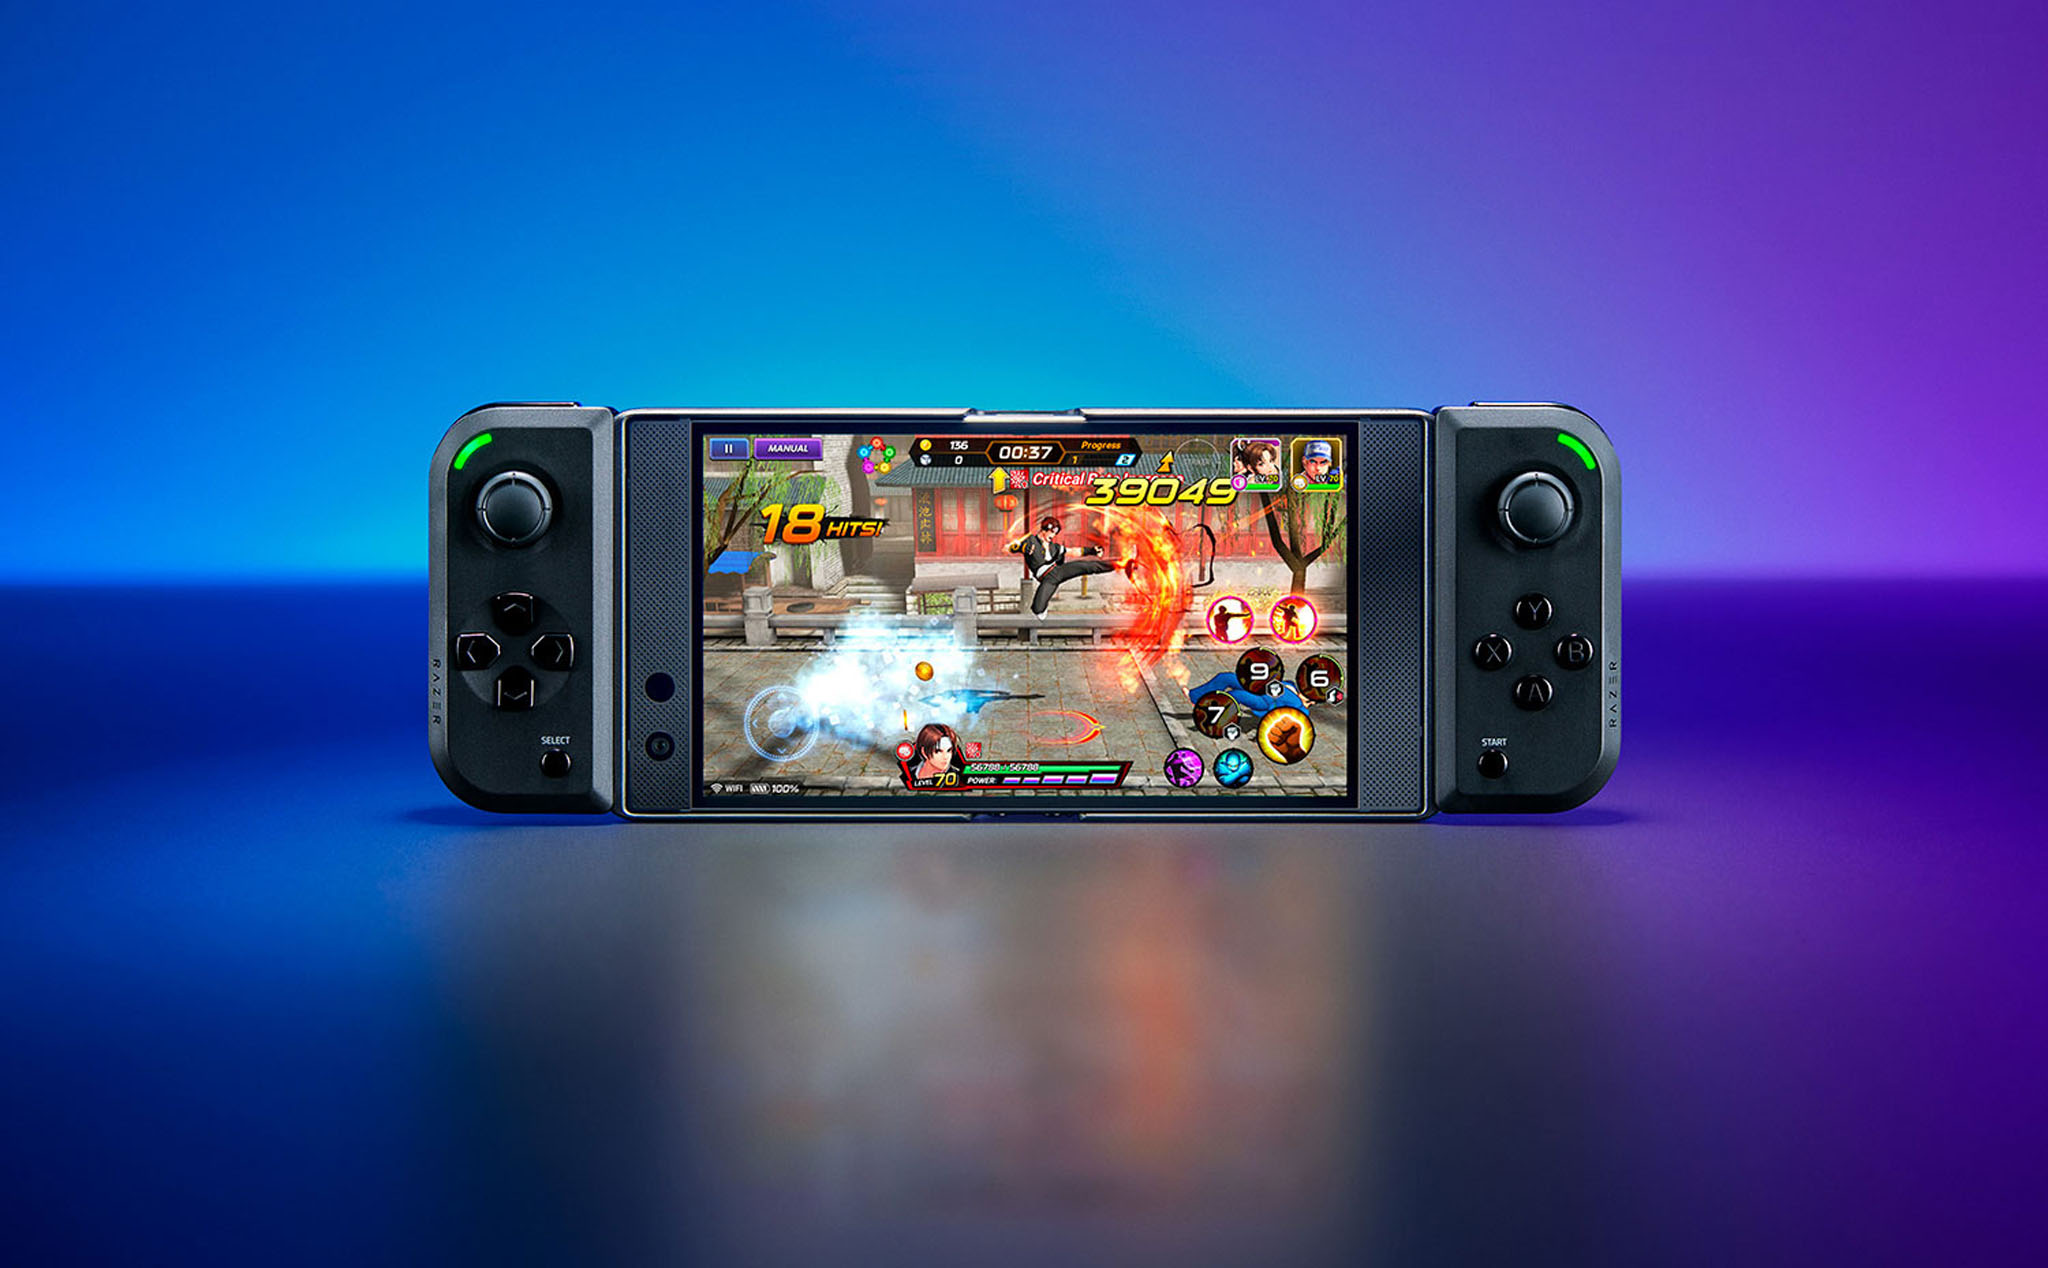 Razer Junglecat: Hand press the same texture game Switch for Android, priced at 99 USD